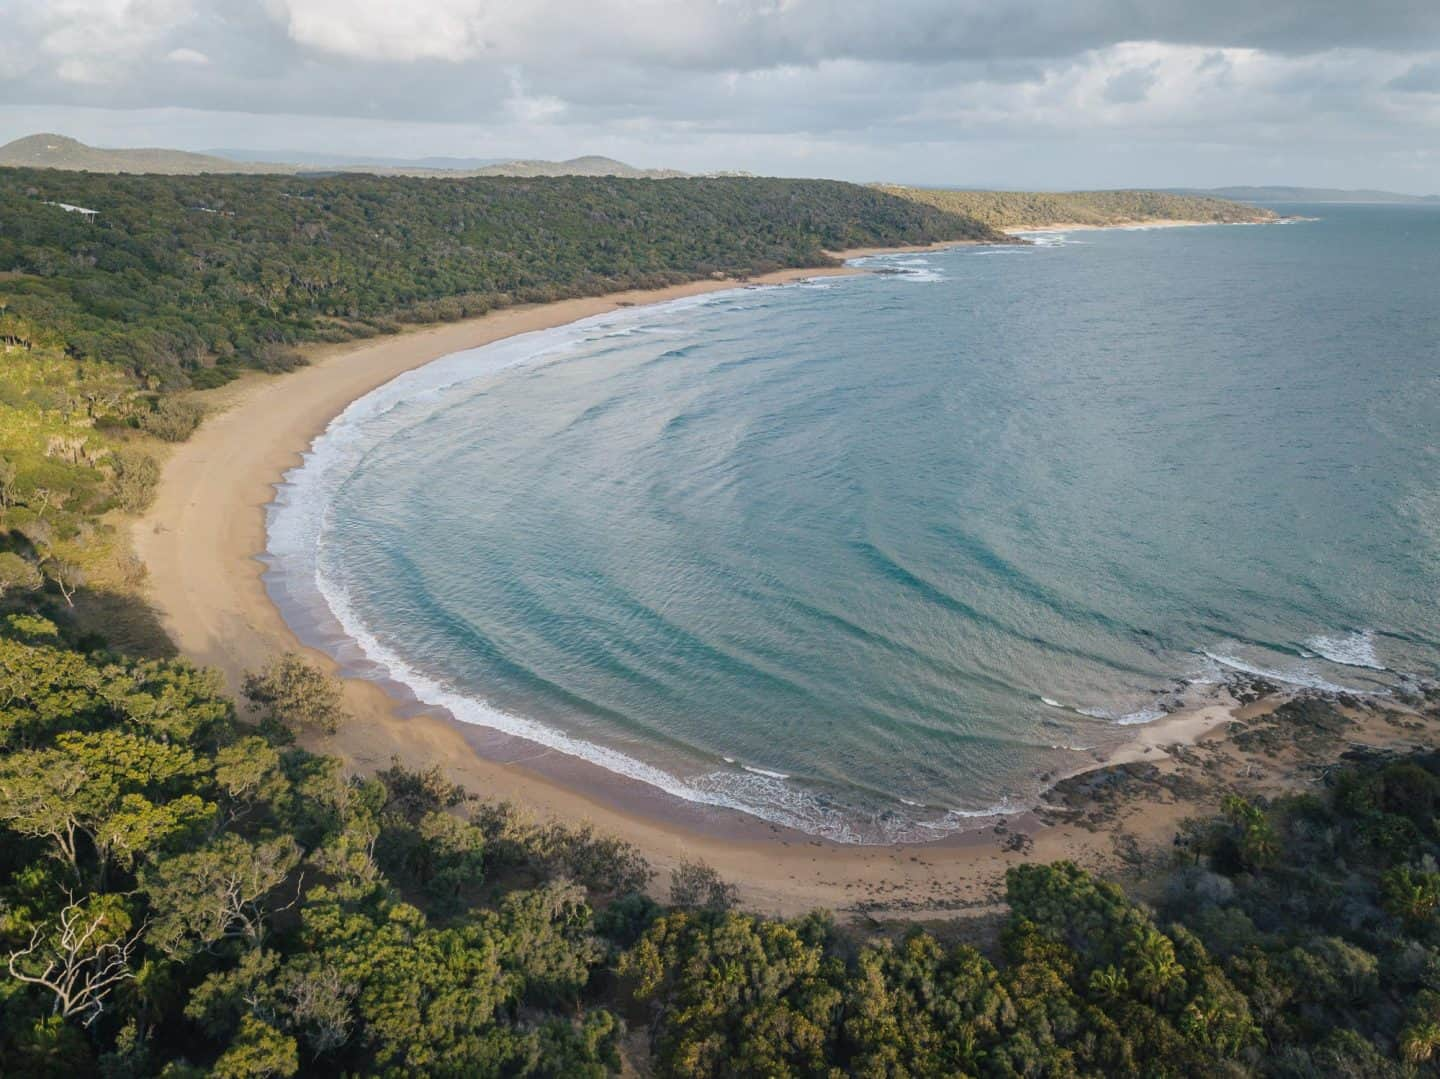 agnes water, agnes waters, things to do in agnes waters, hings to do in agnes water, surfing agnes water, seventeen seventy queensland, seventeen seventy camping, seventeen seventy australia, seventeen seventy, agnes waters things to do, agnes waters map, agnes waters caravan park, agnes waters beach, agnes waters accommodation, agnes water surfing, agnes water surf cam, agnes water queensland, agnes water qld, agnes water caravan park, agnes water camping, agnes water beach, camping ground agnes water, springs beach agnes water